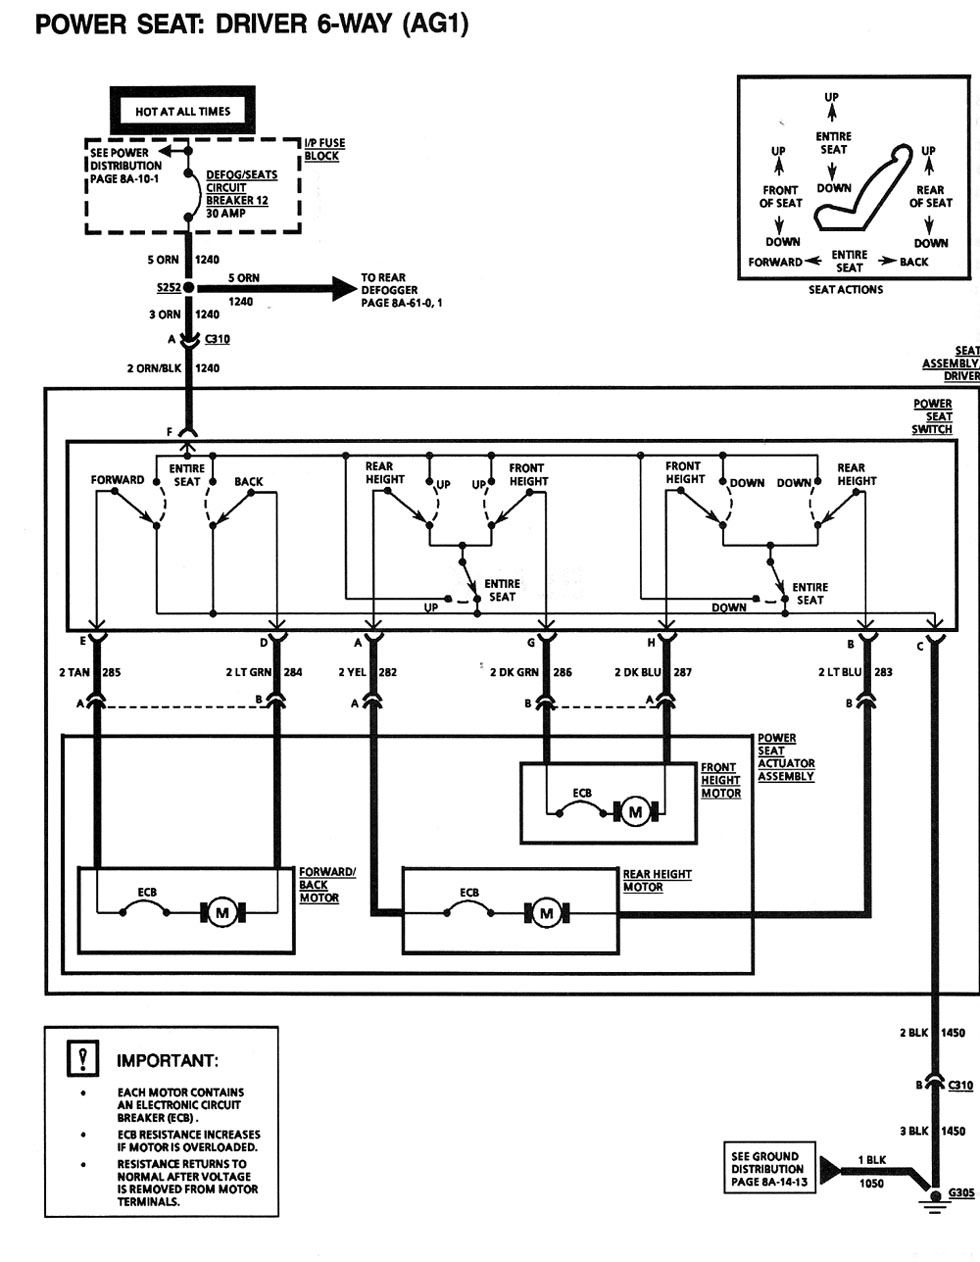 hight resolution of 97 camaro wiring diagrams wiring diagram mix 4th gen lt1 f body tech aids mix power